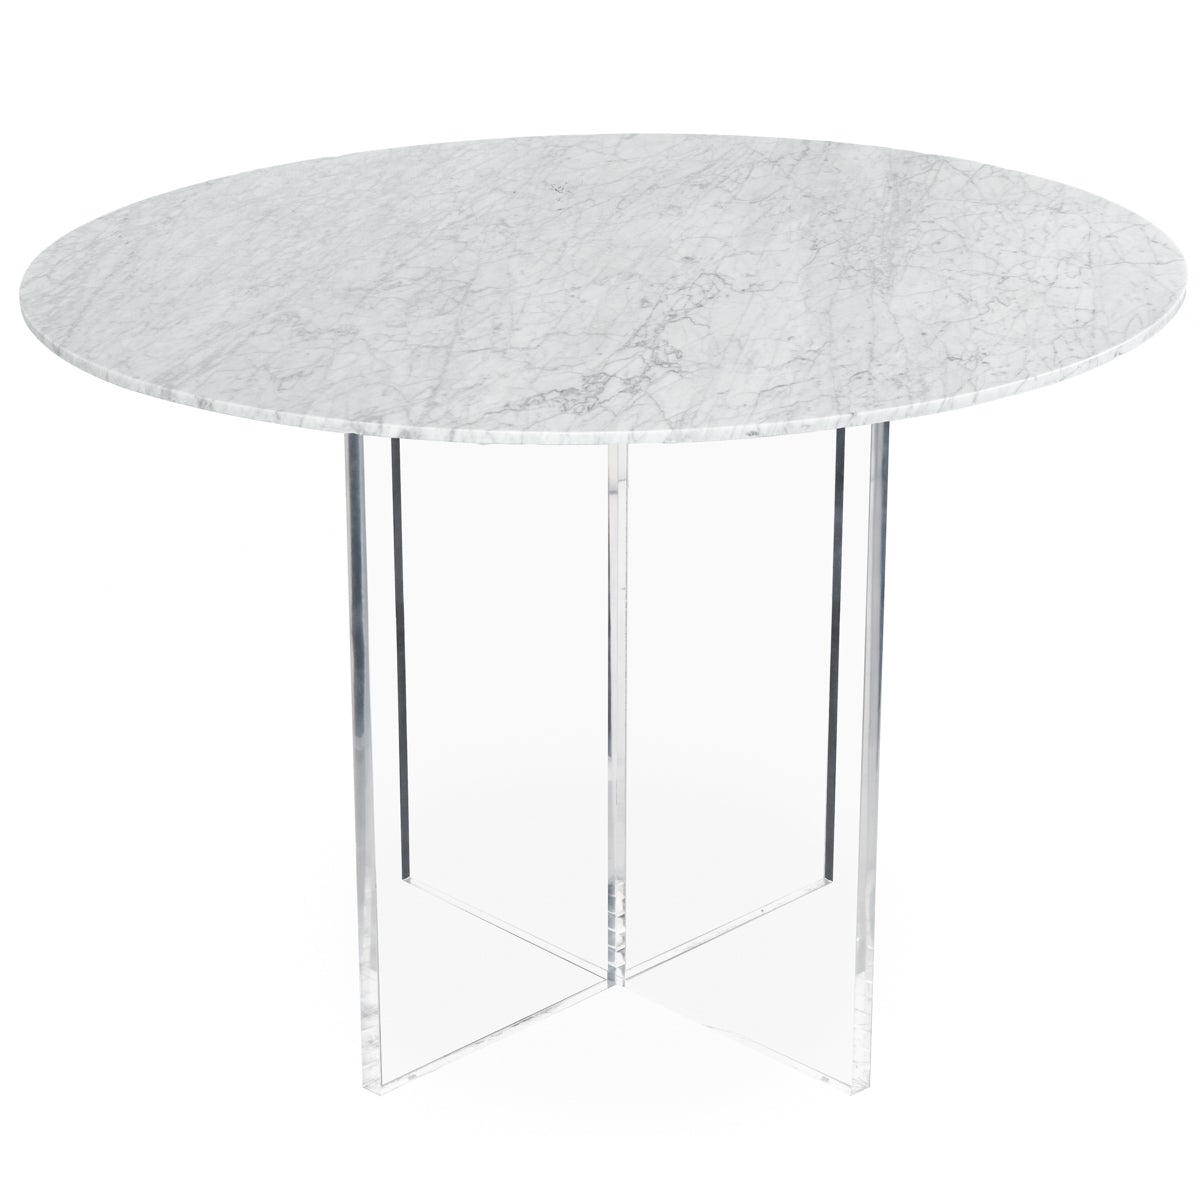 Delano Round Dining Table